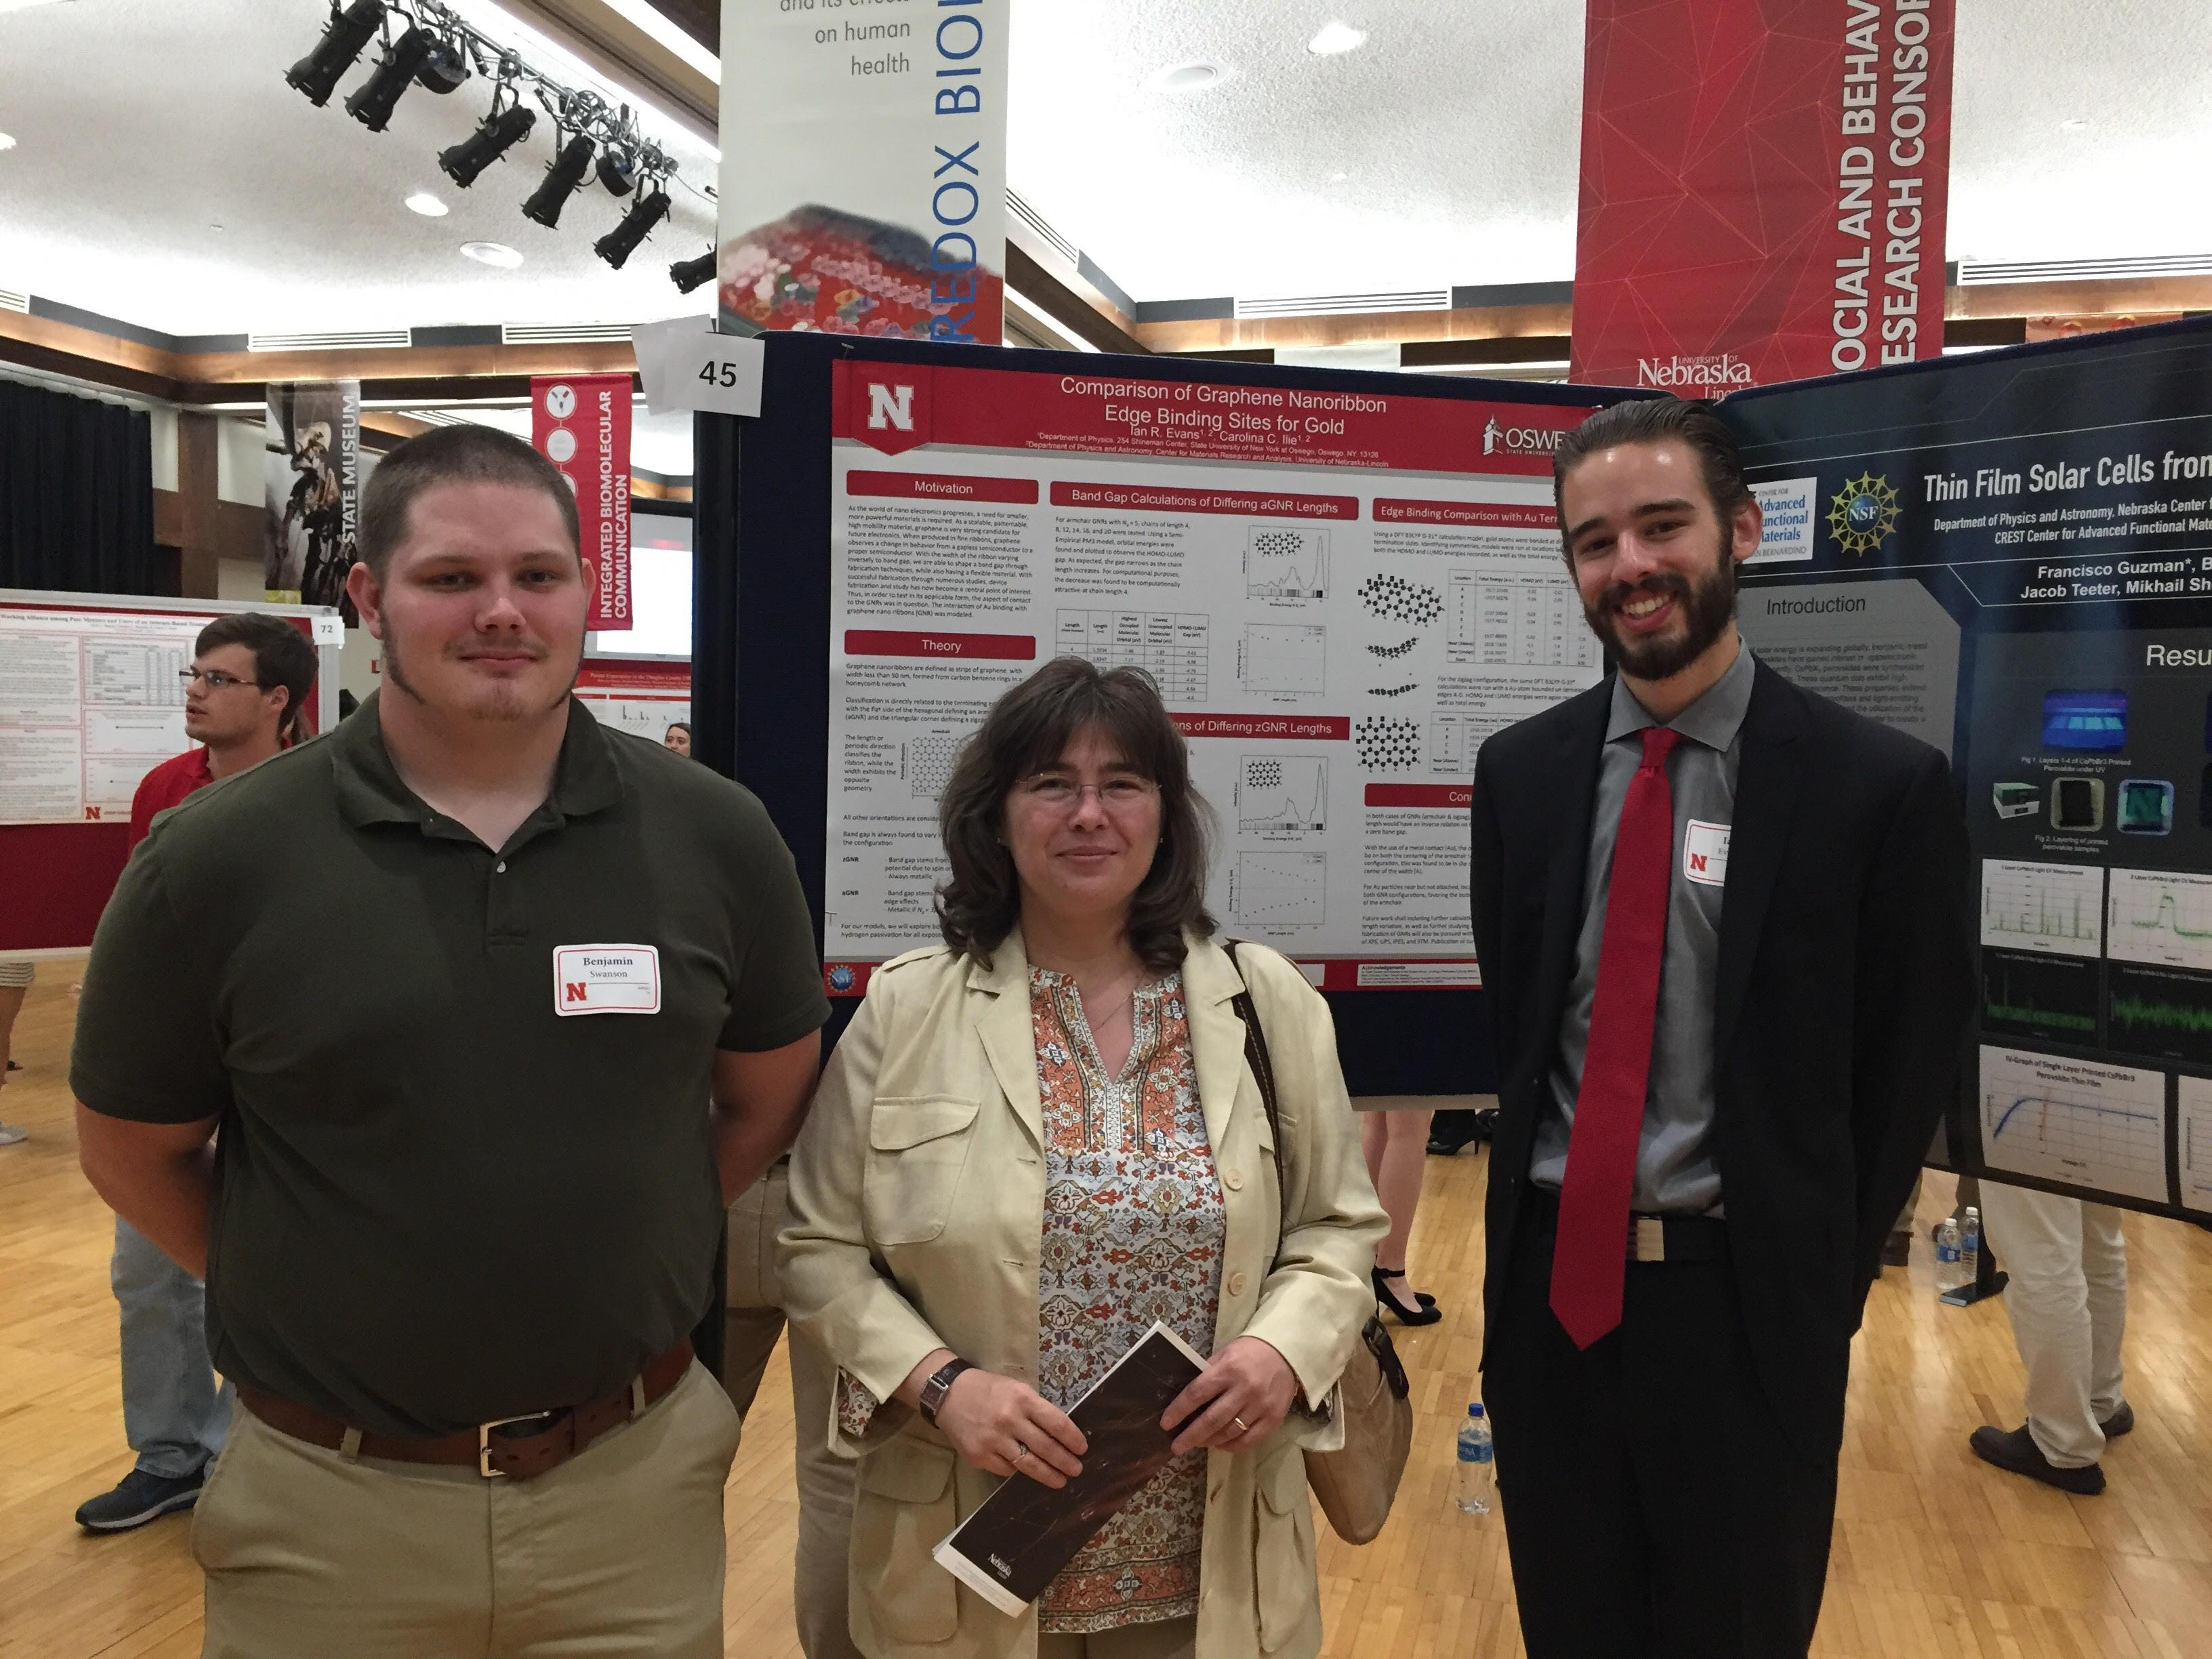 Professor Carolina Ilie with two students presenting research poster